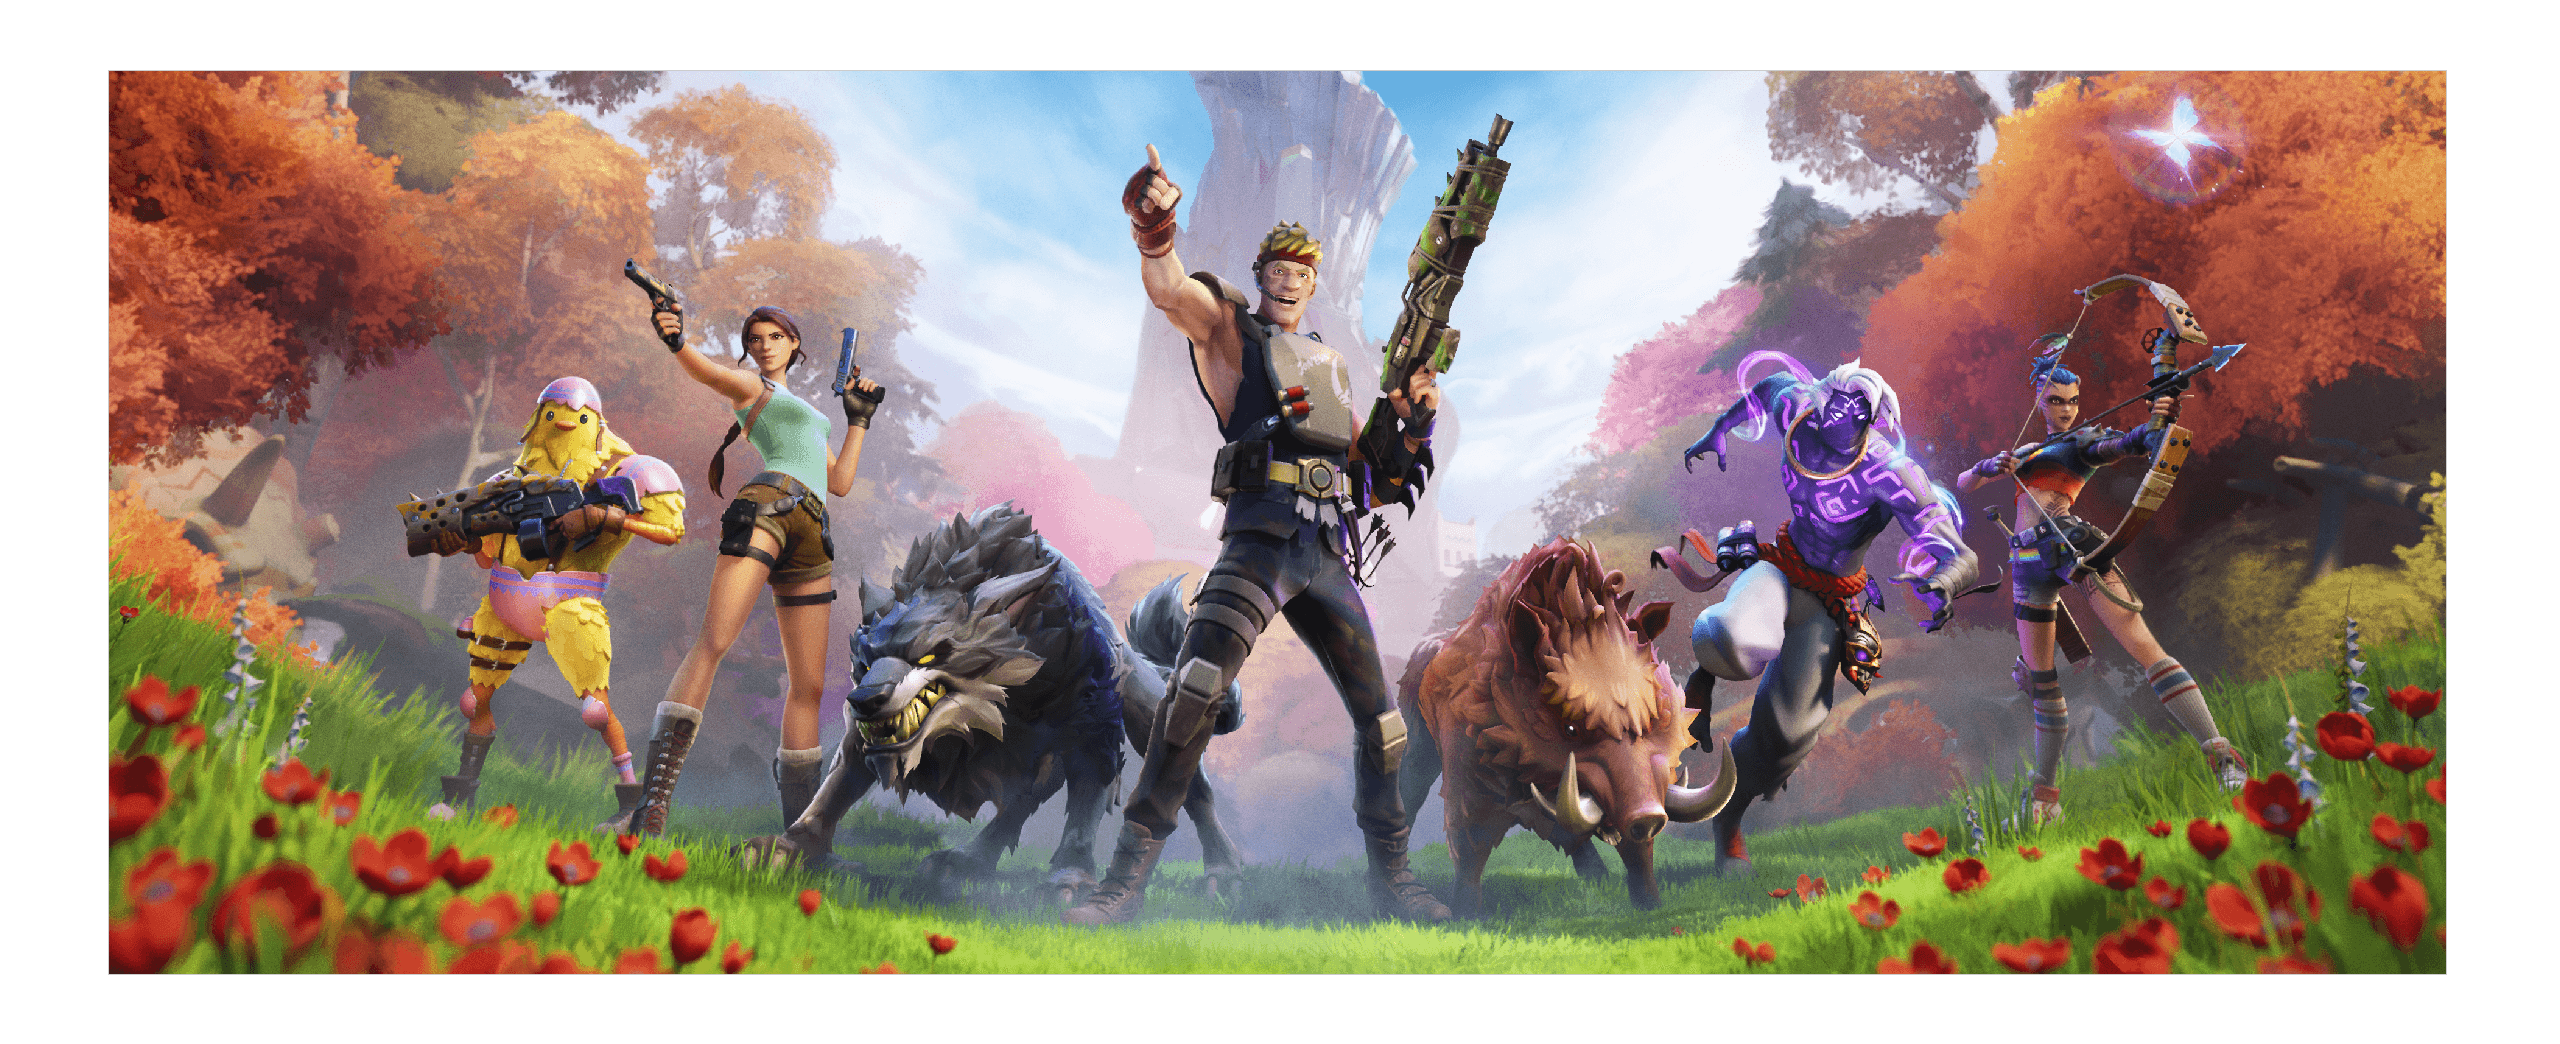 Chapter 2 - Season 6 Battle Pass keyart